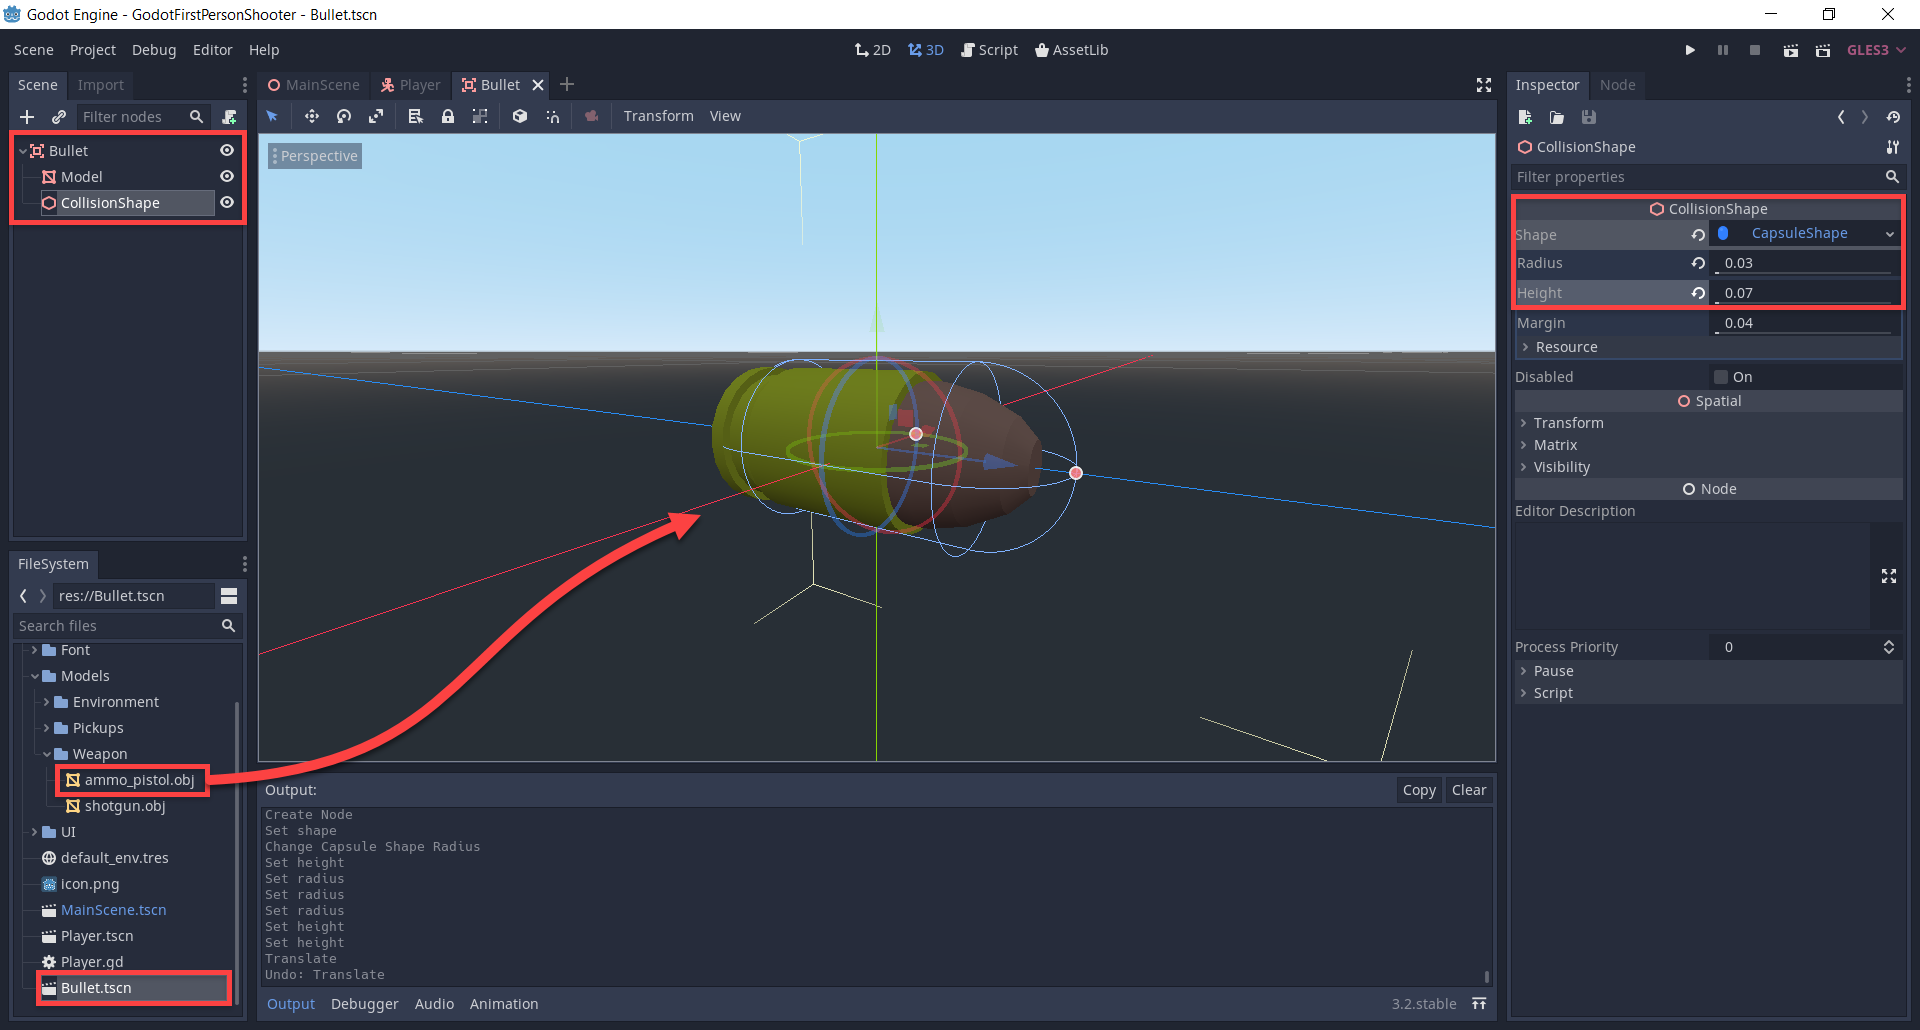 Bullet node in Godot with collision shape